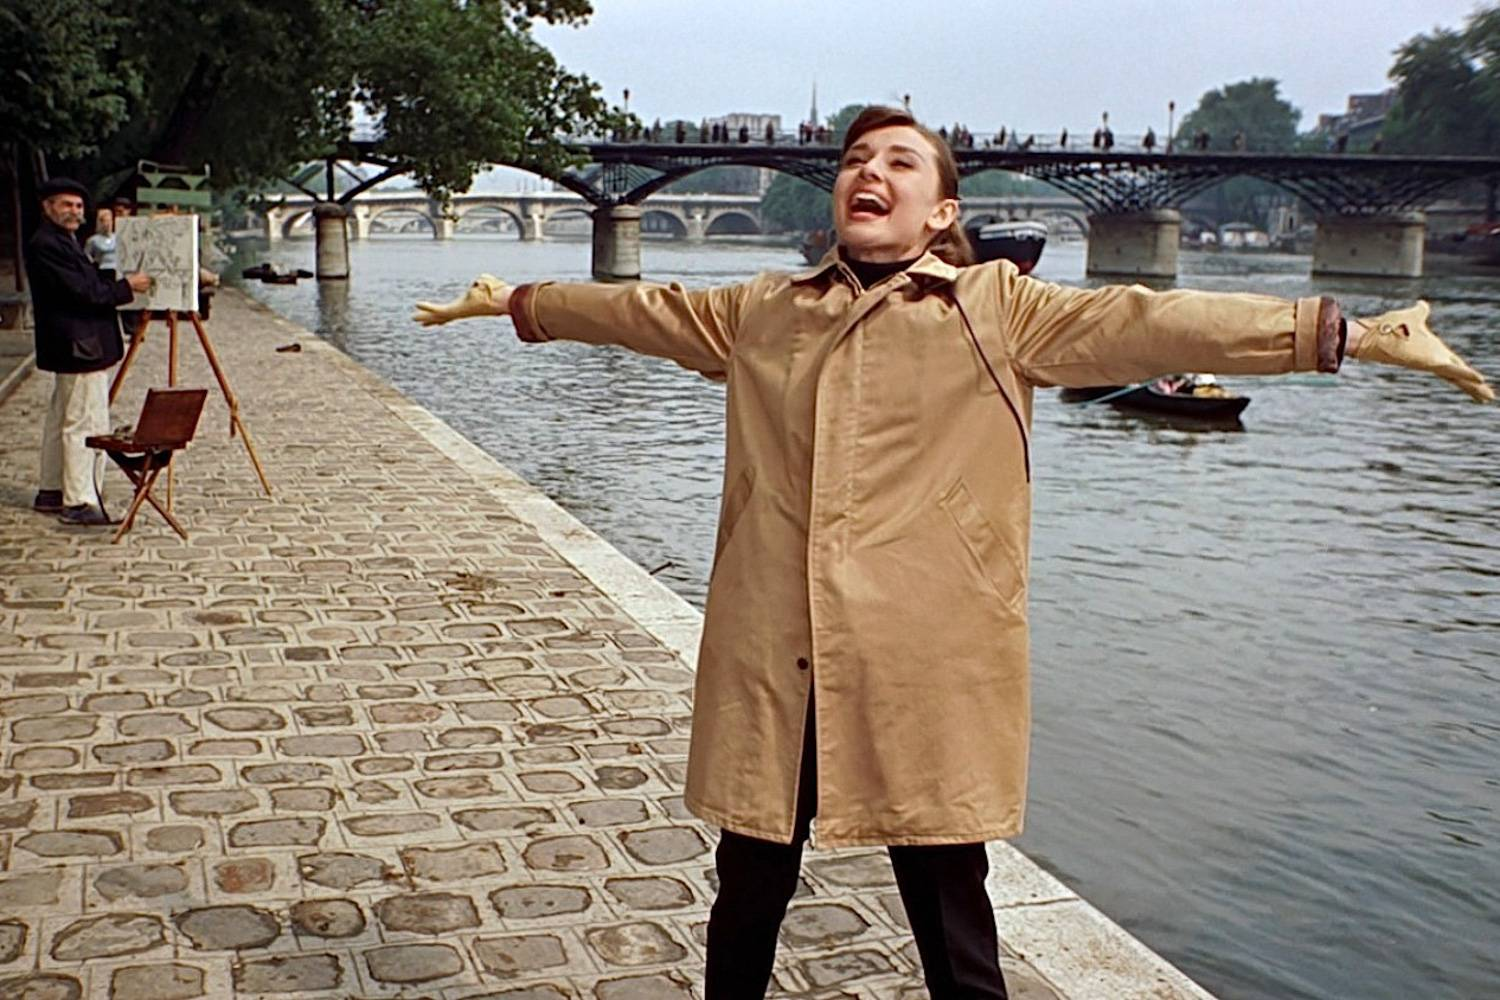 Image still of actress Audrey Hepburn singing on the banks of the Seine in the film Funny Face.